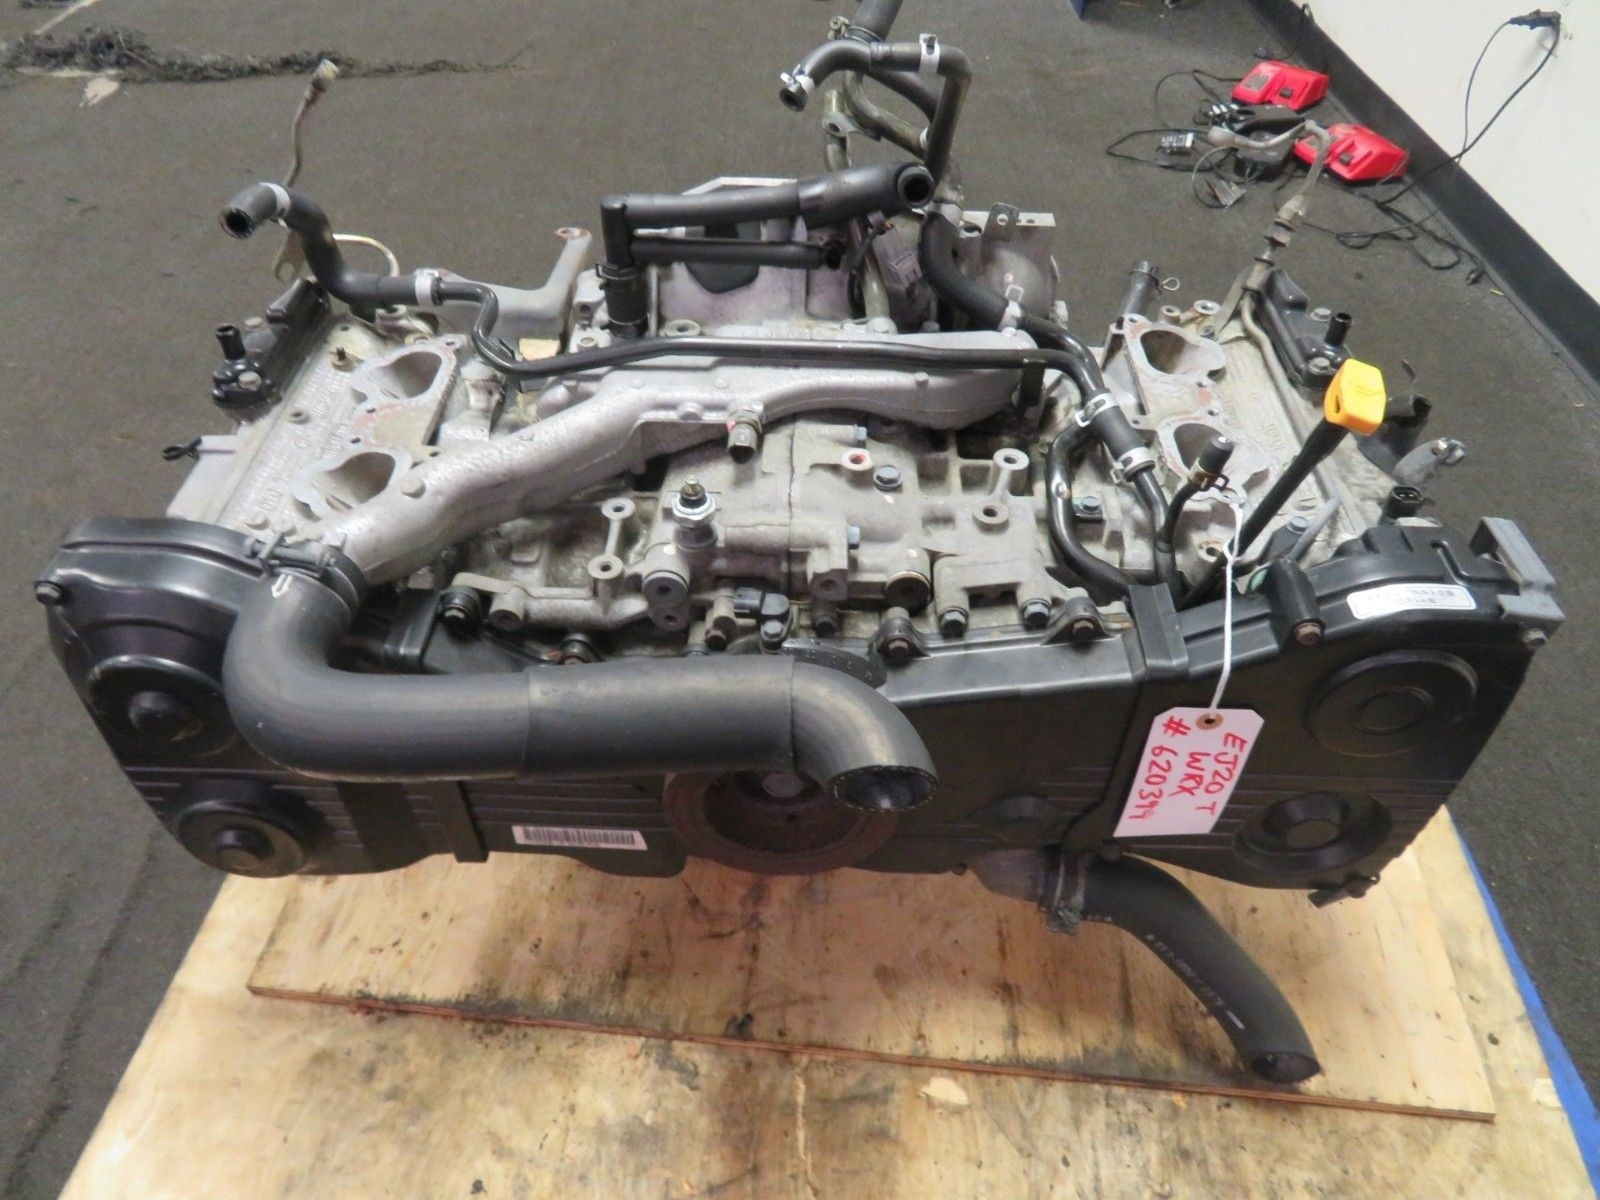 02-05 Subaru WRX EJ20 2.0L Turbo Long Block Engine